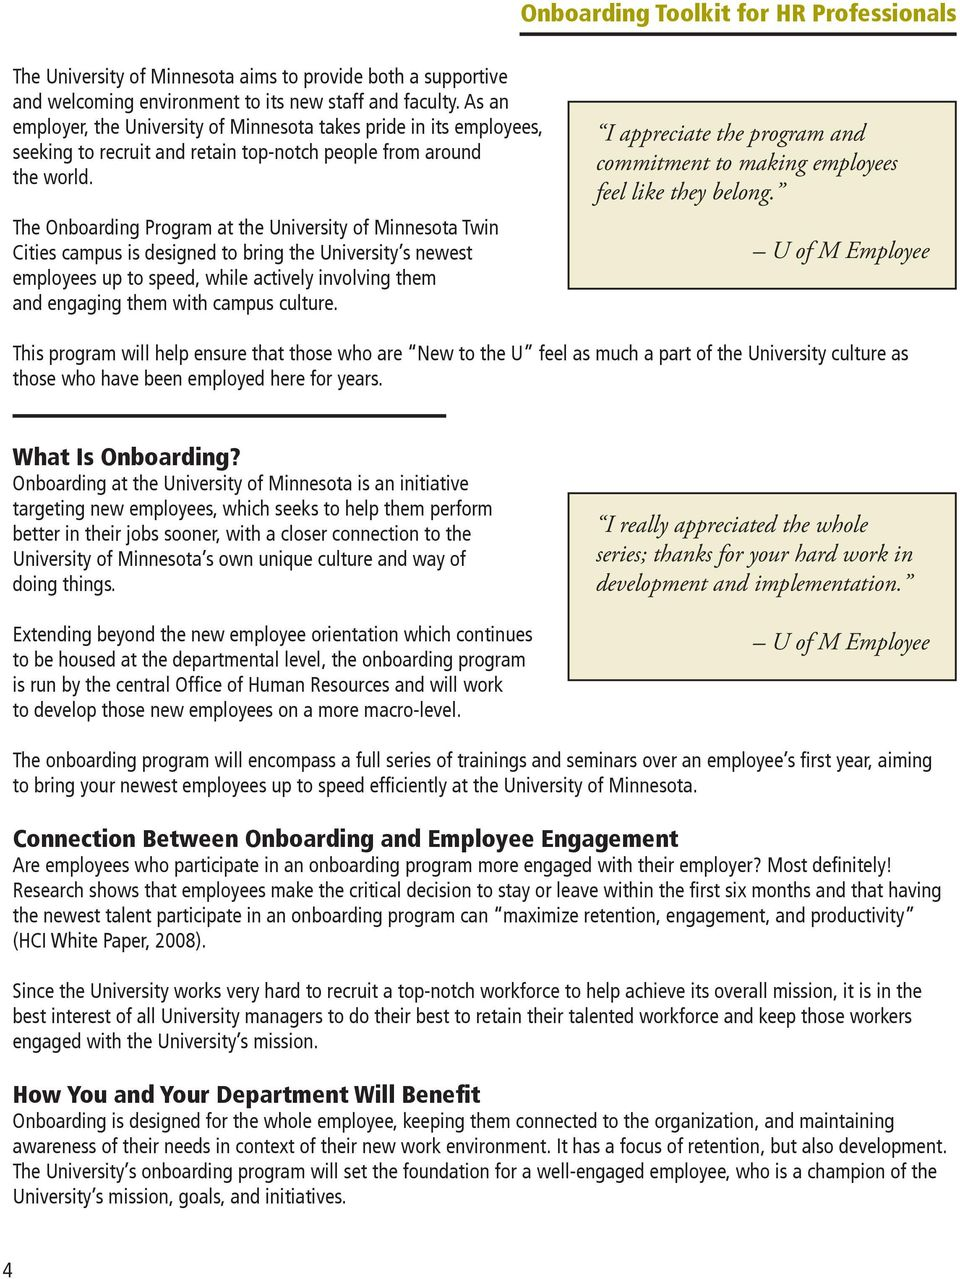 employee orientation essay Orientation welcome to time4writing we're so glad you've decided to allow our certified time4writing teachers to help your child develop skills and boost confidence in their own writing.